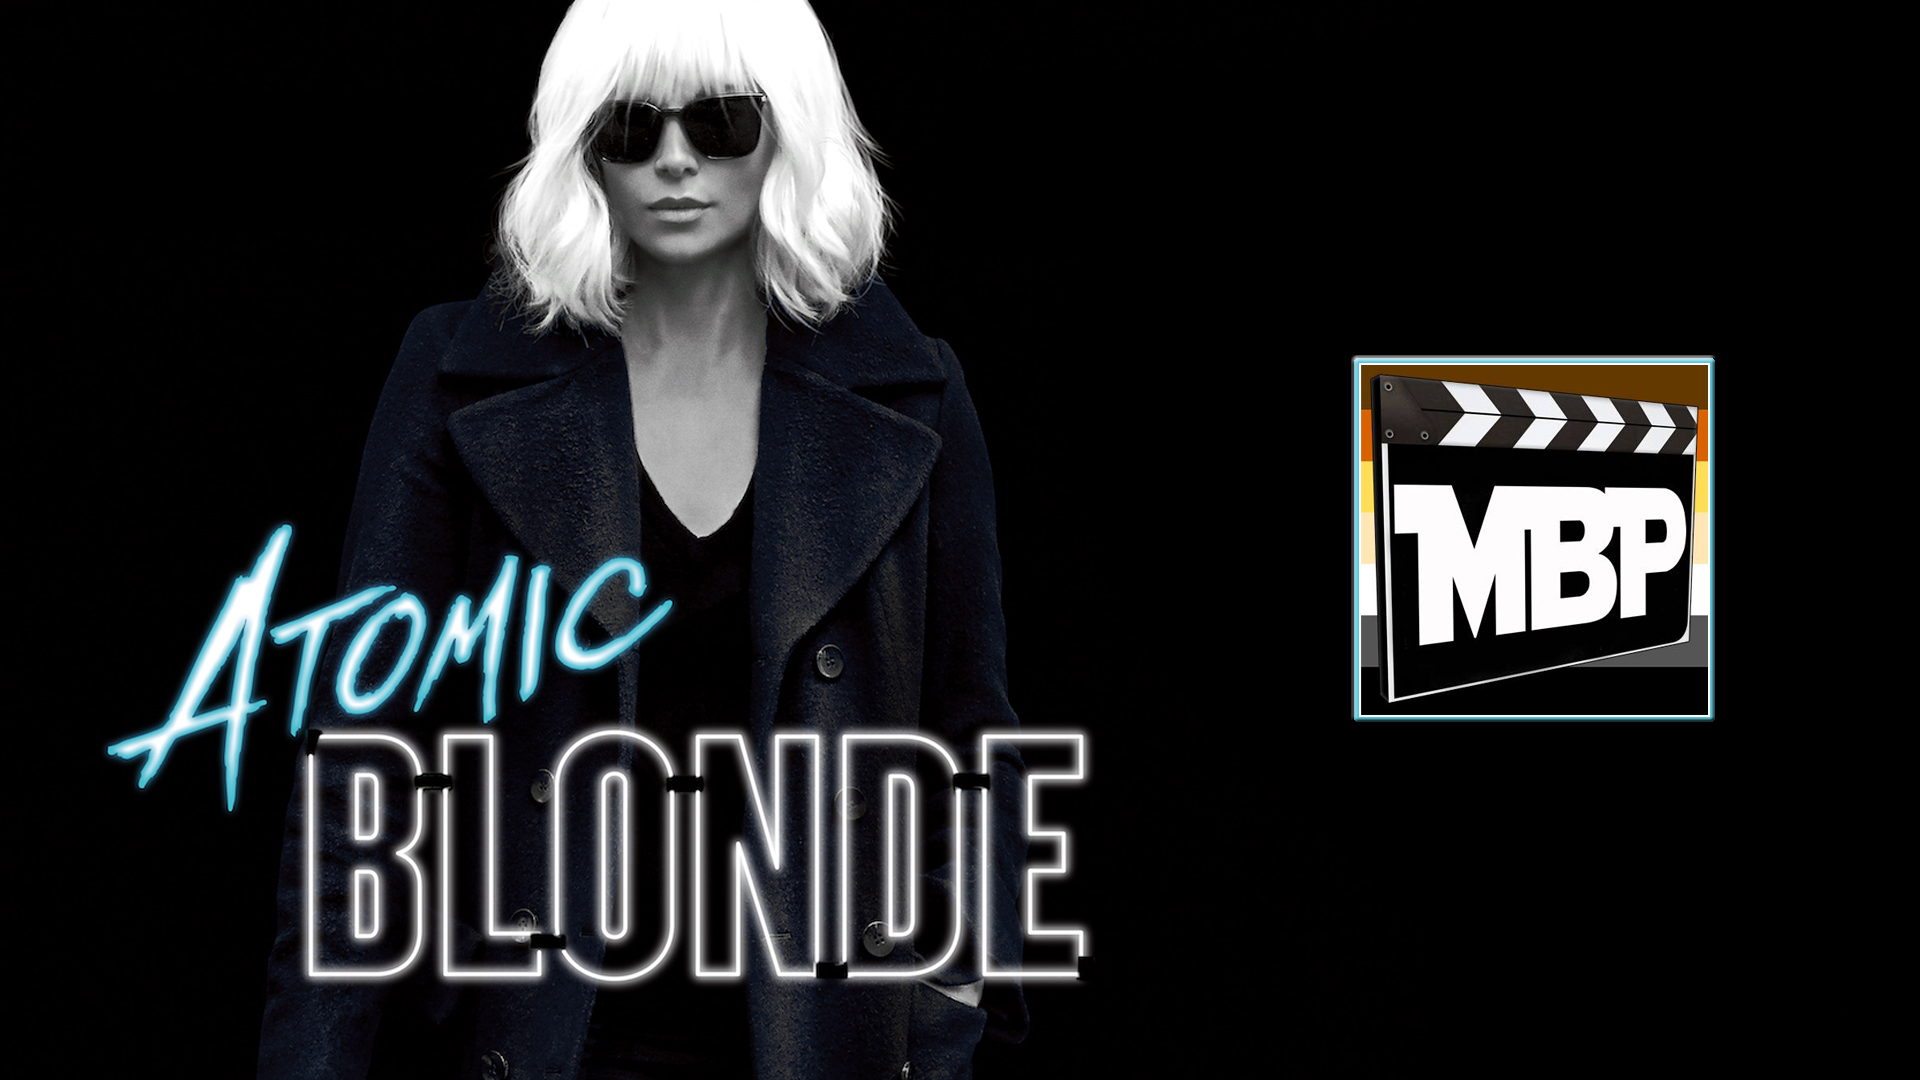 MBP e245 - 'Atomic Blonde' (8/4/17)    With a soundtrack filled with hit 80s music, elaborate, bone-crunching fight choreography, and a lead performance by Charlize Theron, 'Atomic Blonde' should be right up our alleys. But does it blend these elements effectively? Click through to listen!